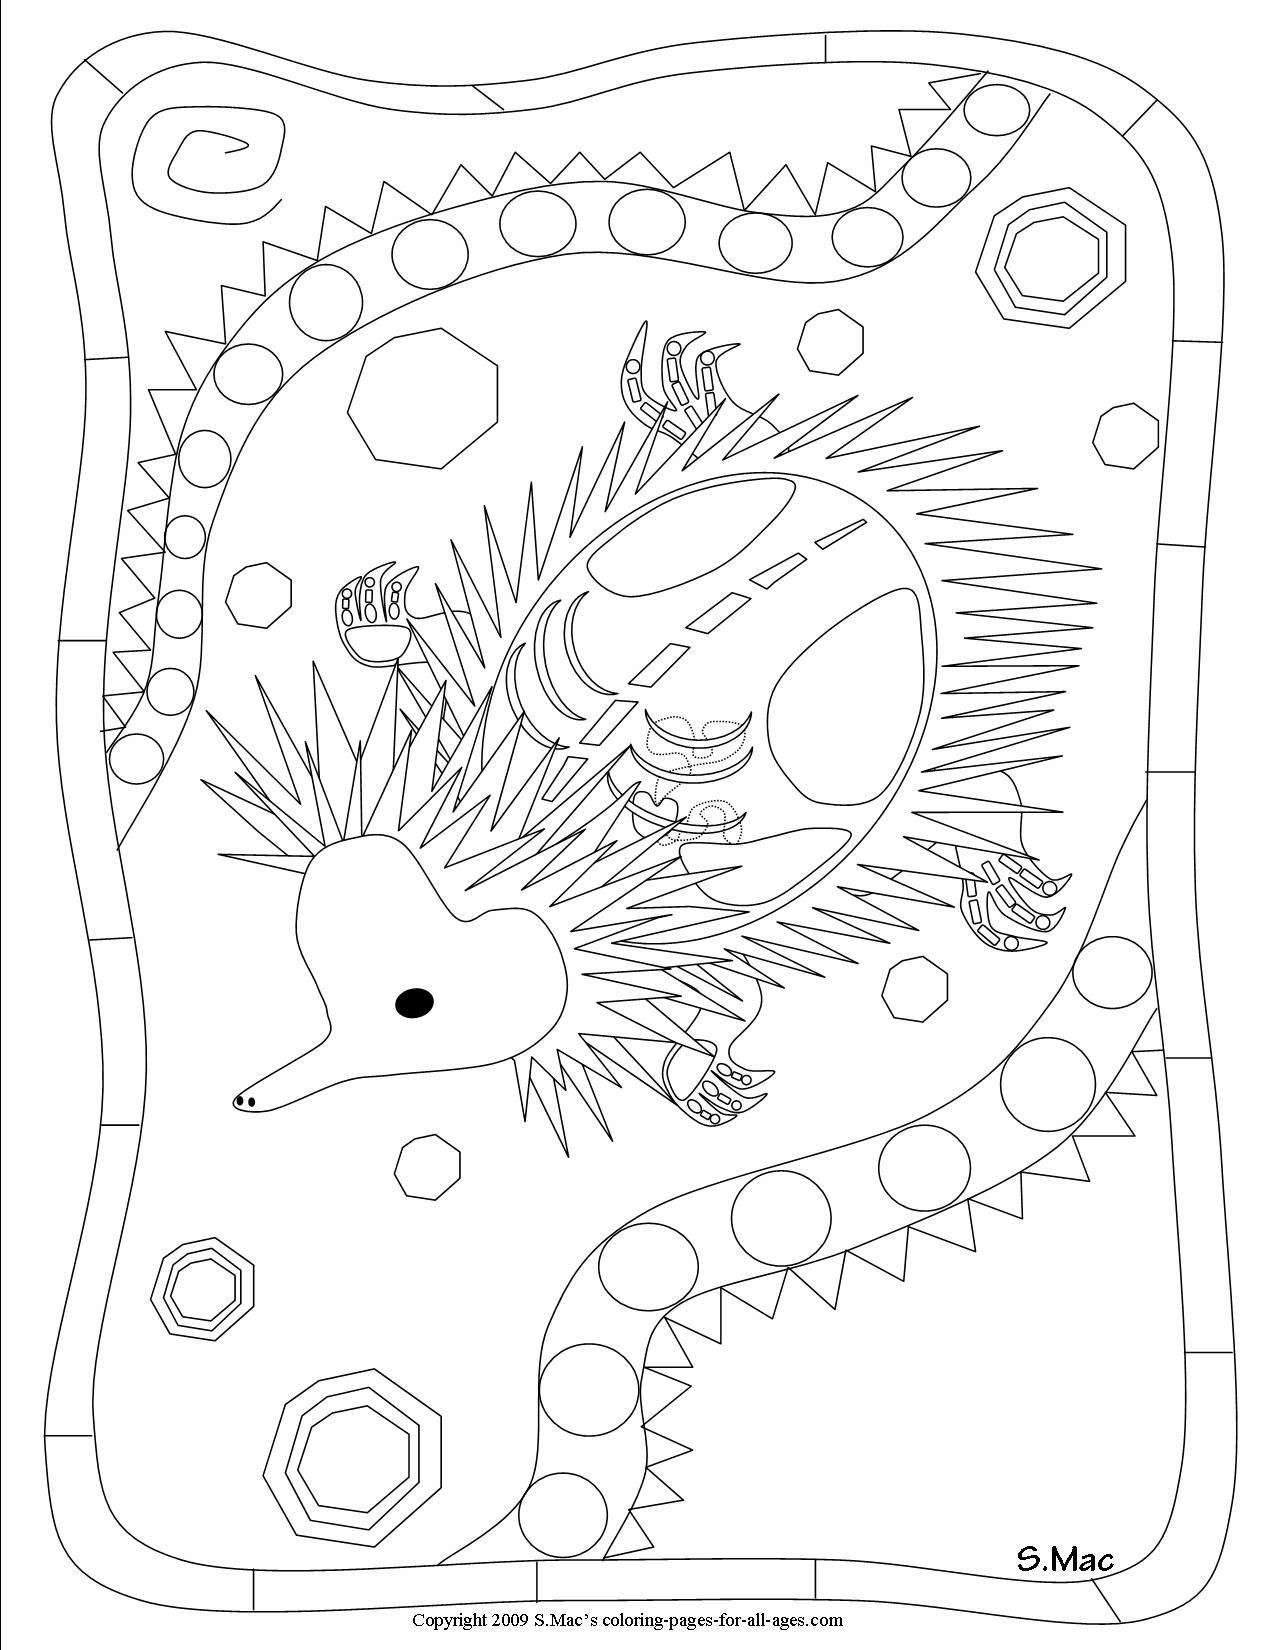 X Ray Art Coloring Pages Aboriginal Dot Art Xray Art Aboriginal Dot Painting